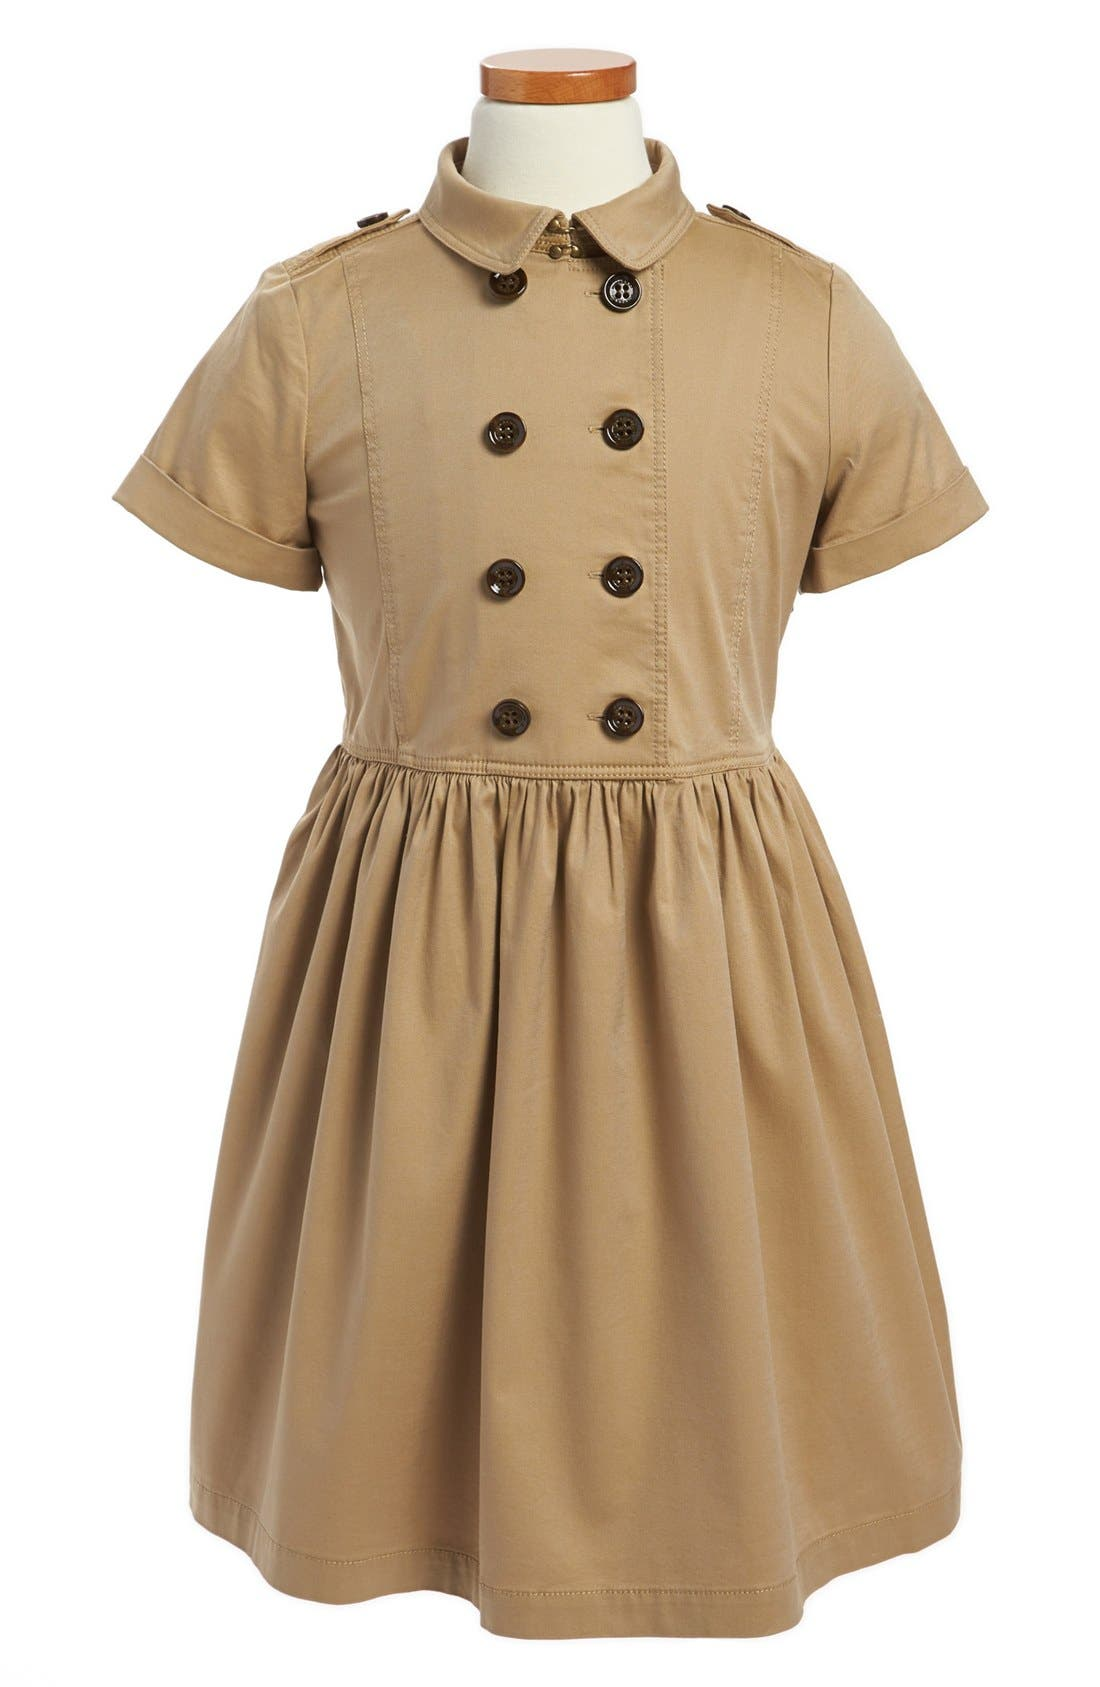 Main Image - Burberry 'Elive' Trench Dress (Little Girls & Big Girls)